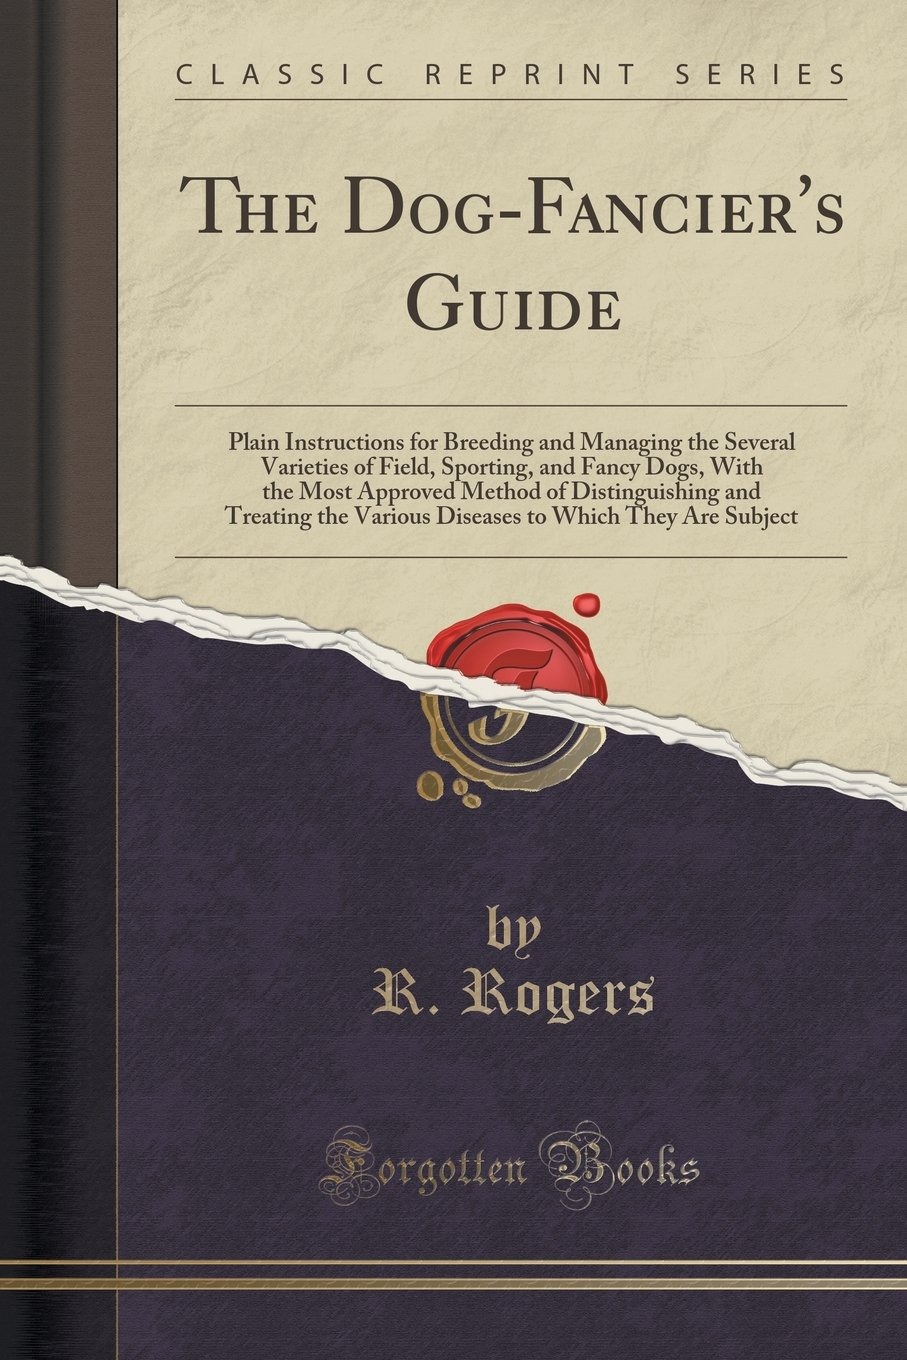 Download The Dog-Fancier's Guide: Plain Instructions for Breeding and Managing the Several Varieties of Field, Sporting, and Fancy Dogs, With the Most Approved ... to Which They Are Subject (Classic Reprint) PDF